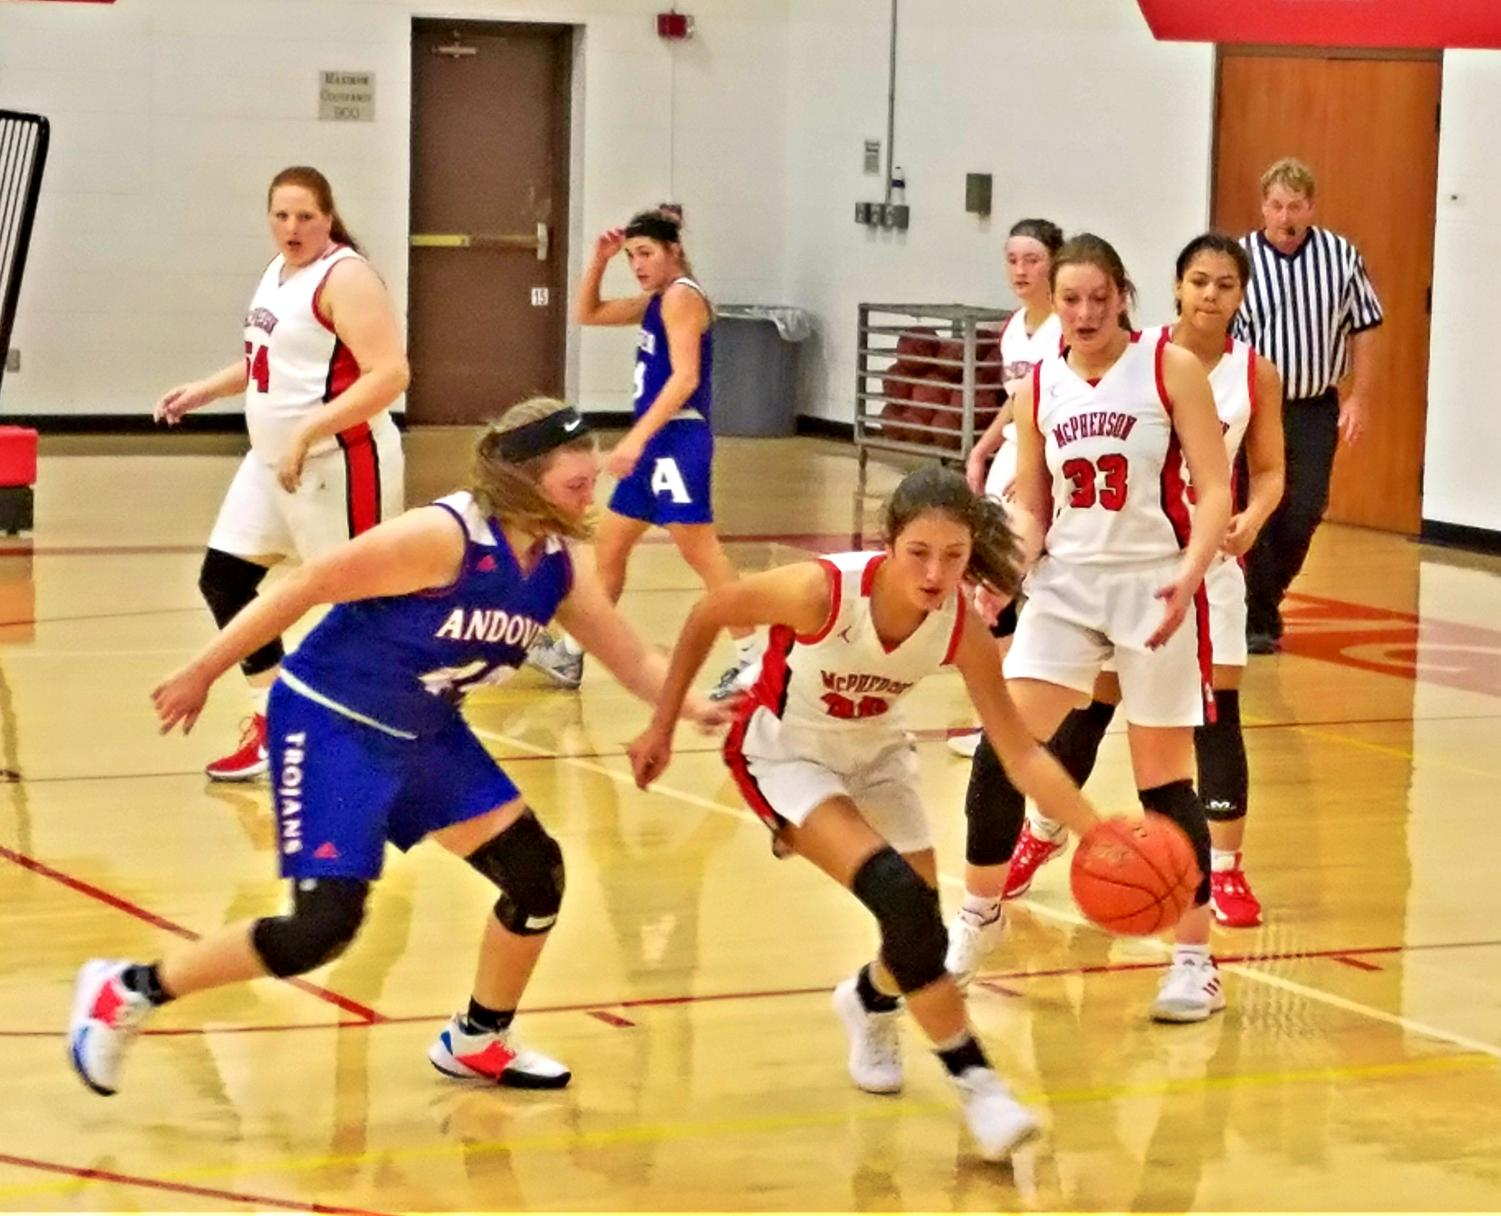 The Girls JV Basketball team played hard against their opponents, the Andover Trojans.